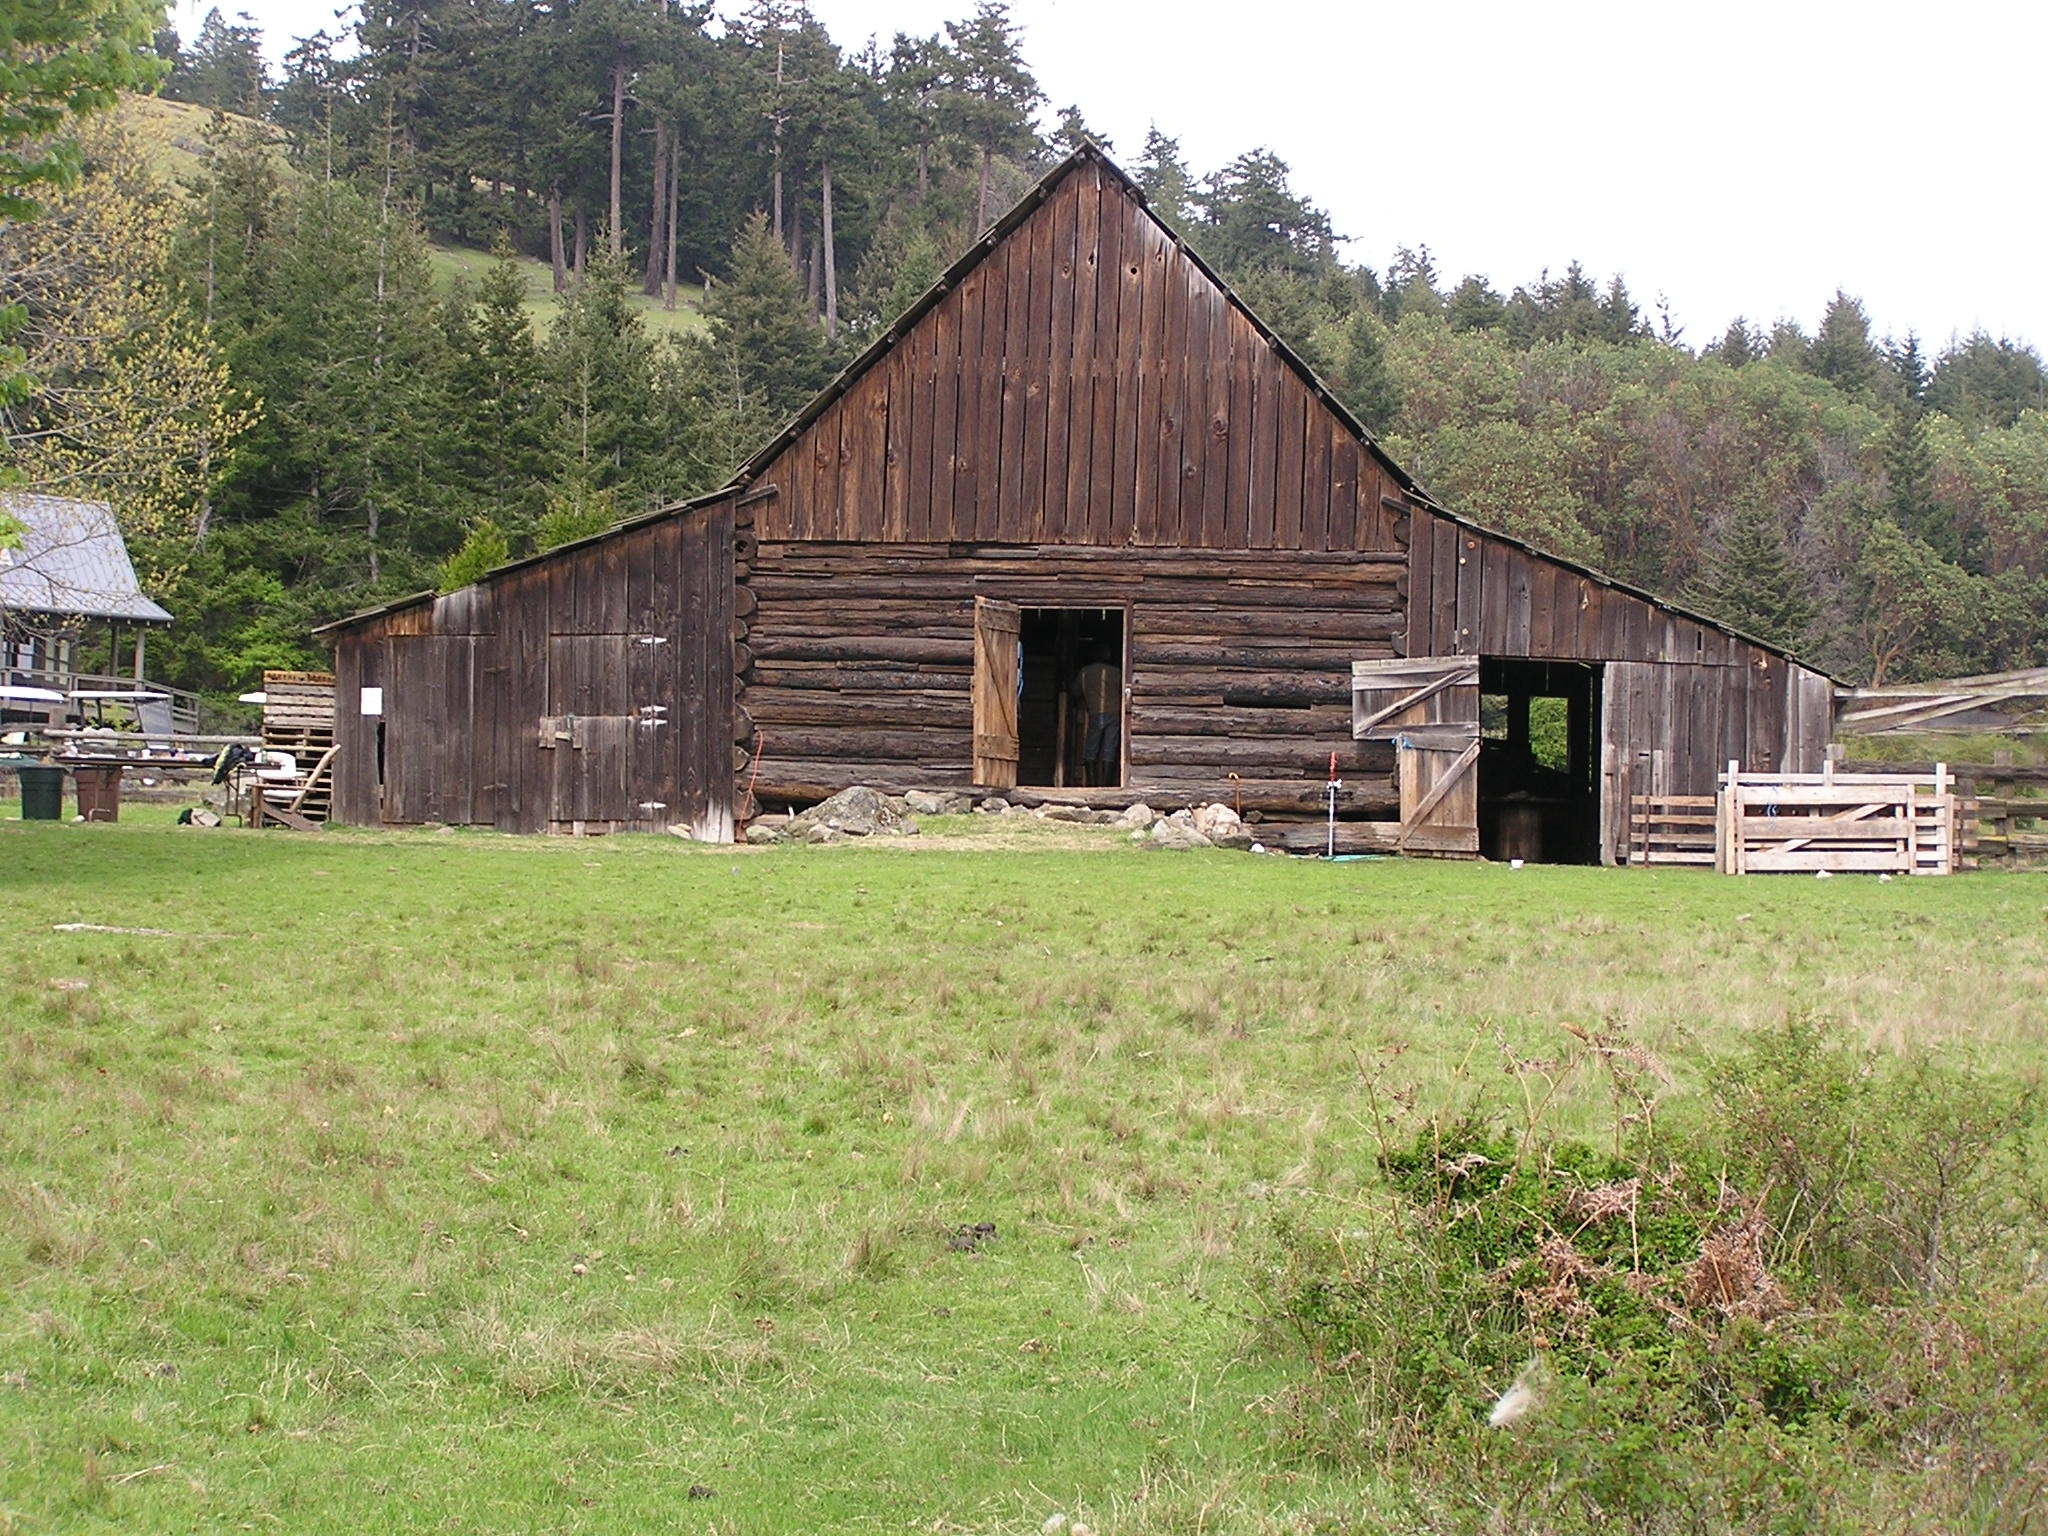 Outer Islands Historic Barns Of The San Juan Islands